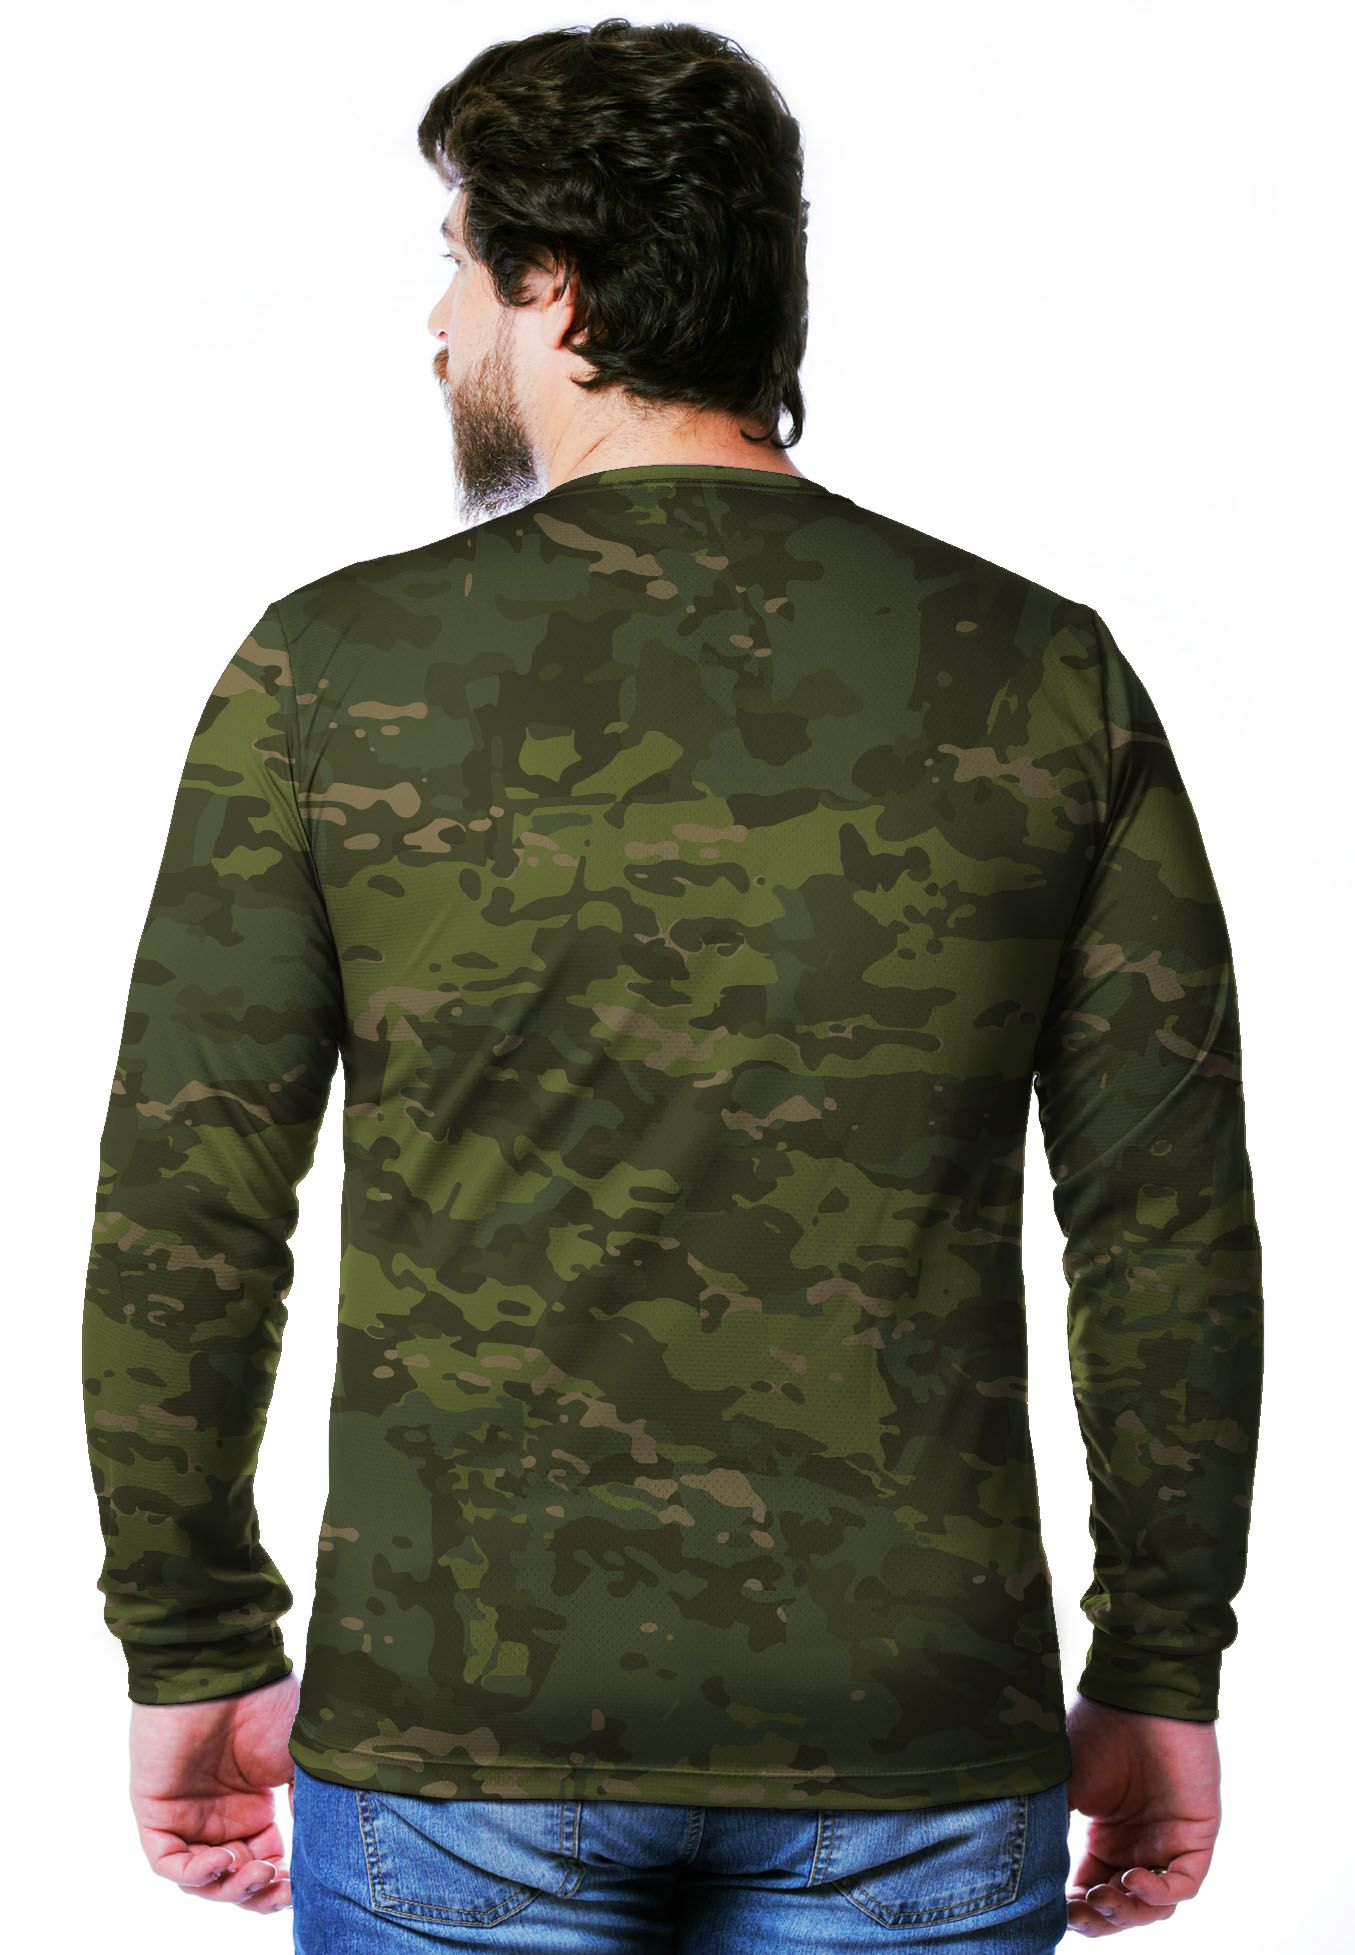 CAMISETA CAMUFLADA MULTICAM TROPICAL MANGA LONGA MASCULINA  - REAL HUNTER OUTDOORS